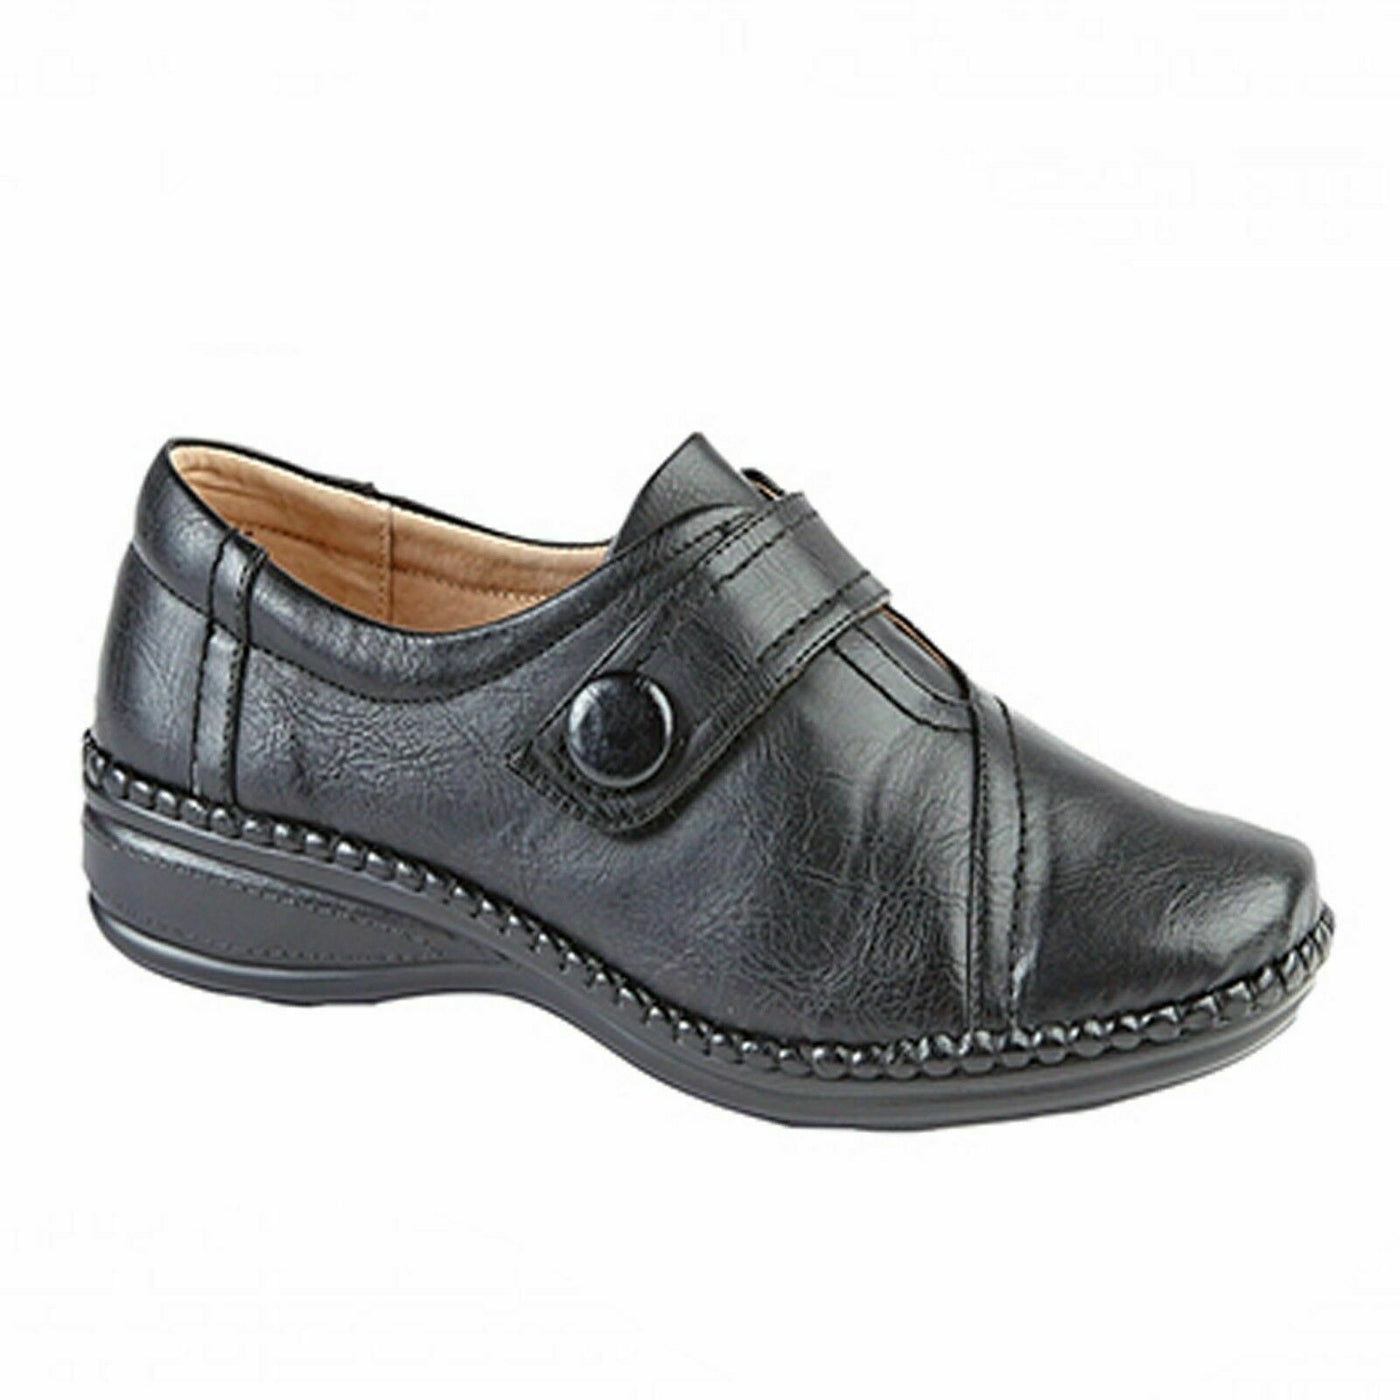 LADIES SIZE 3 4 5 6 7 8 9 BLACK LEATHER LOAFER CASUAL SLIP ON WIDE FIT EEE SHOES